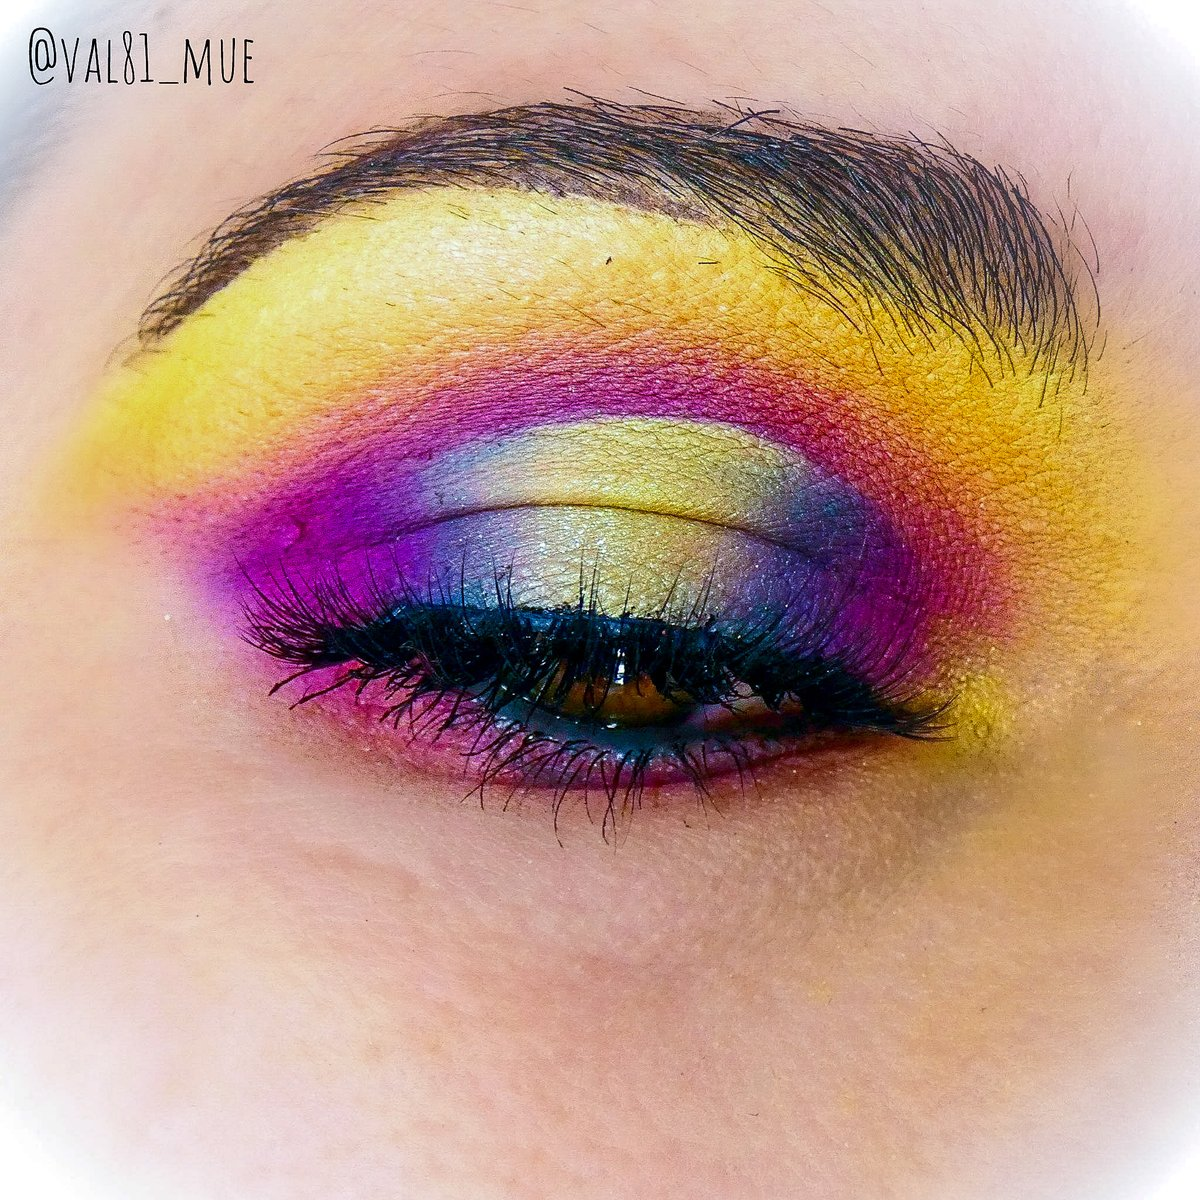 #colorfuleyeshadow #makeup using @ABHcosmetics mini pro pigment palette collection 😍 #makeupartist #beauty #beautycommunity #mua #colors #colorful #AnastasiaBeverlyHills